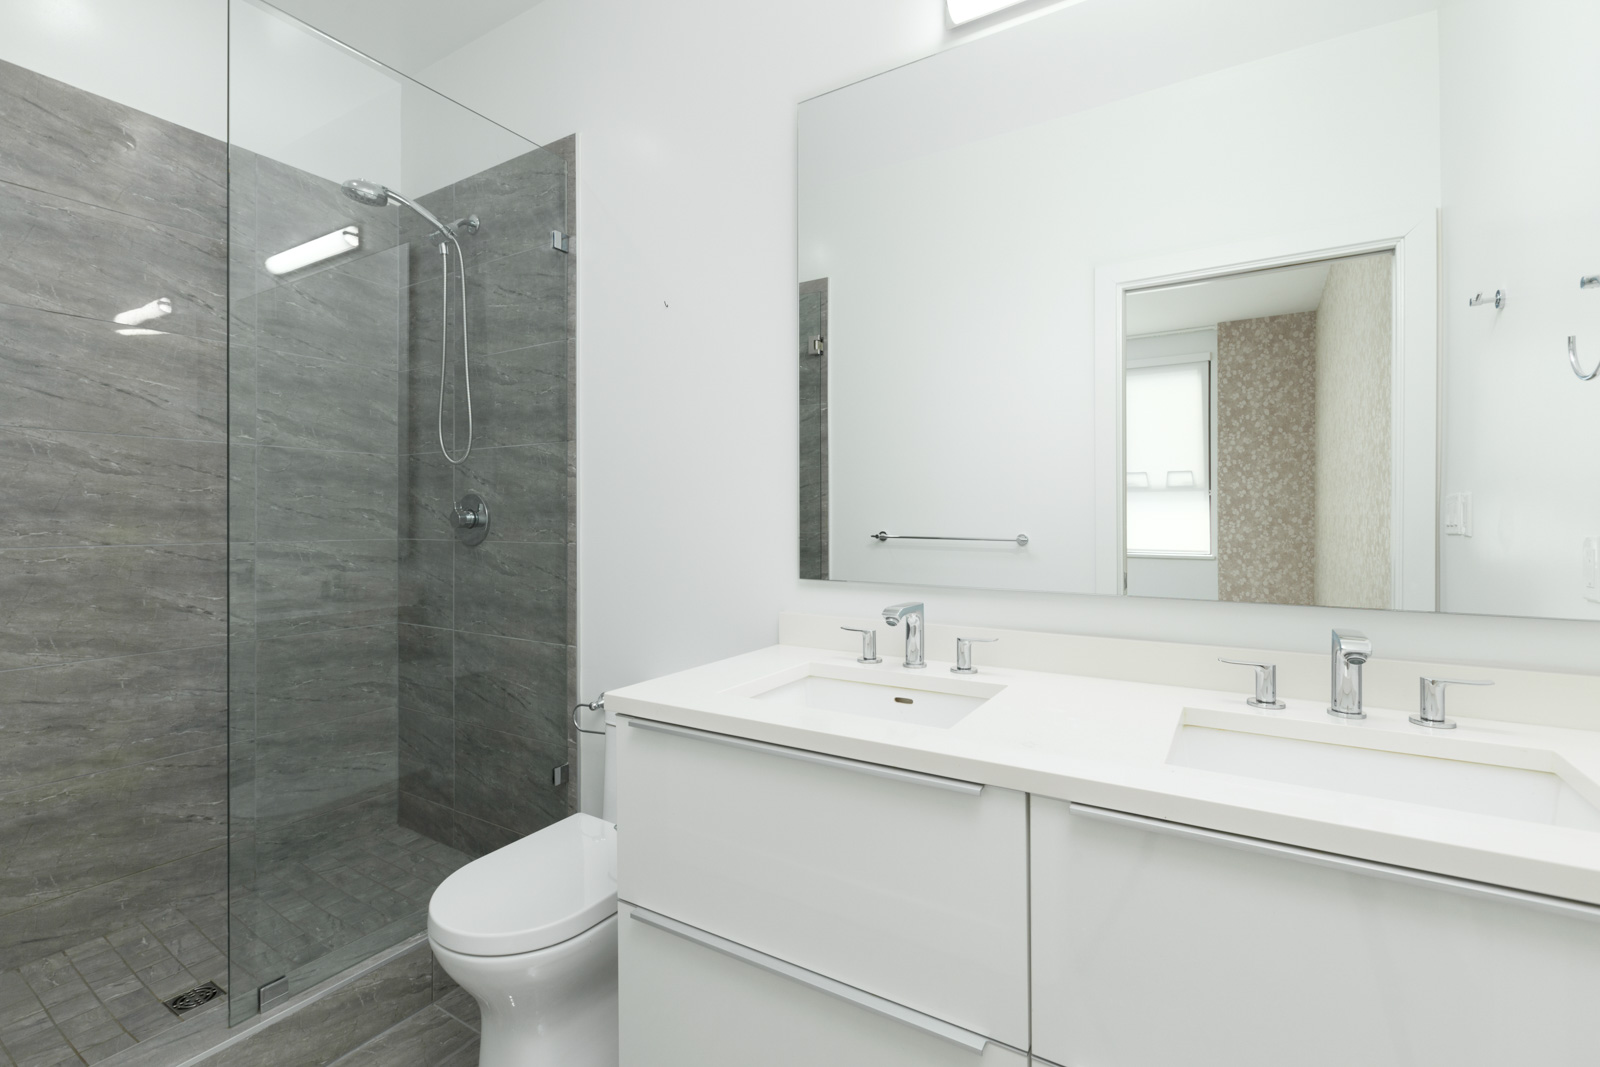 Bathroom with double-sinks and modern bathroom fixtures and a large wall mirror in a rental townhouse in West Vancouver listed by Birds Nest Properties in Vancouver